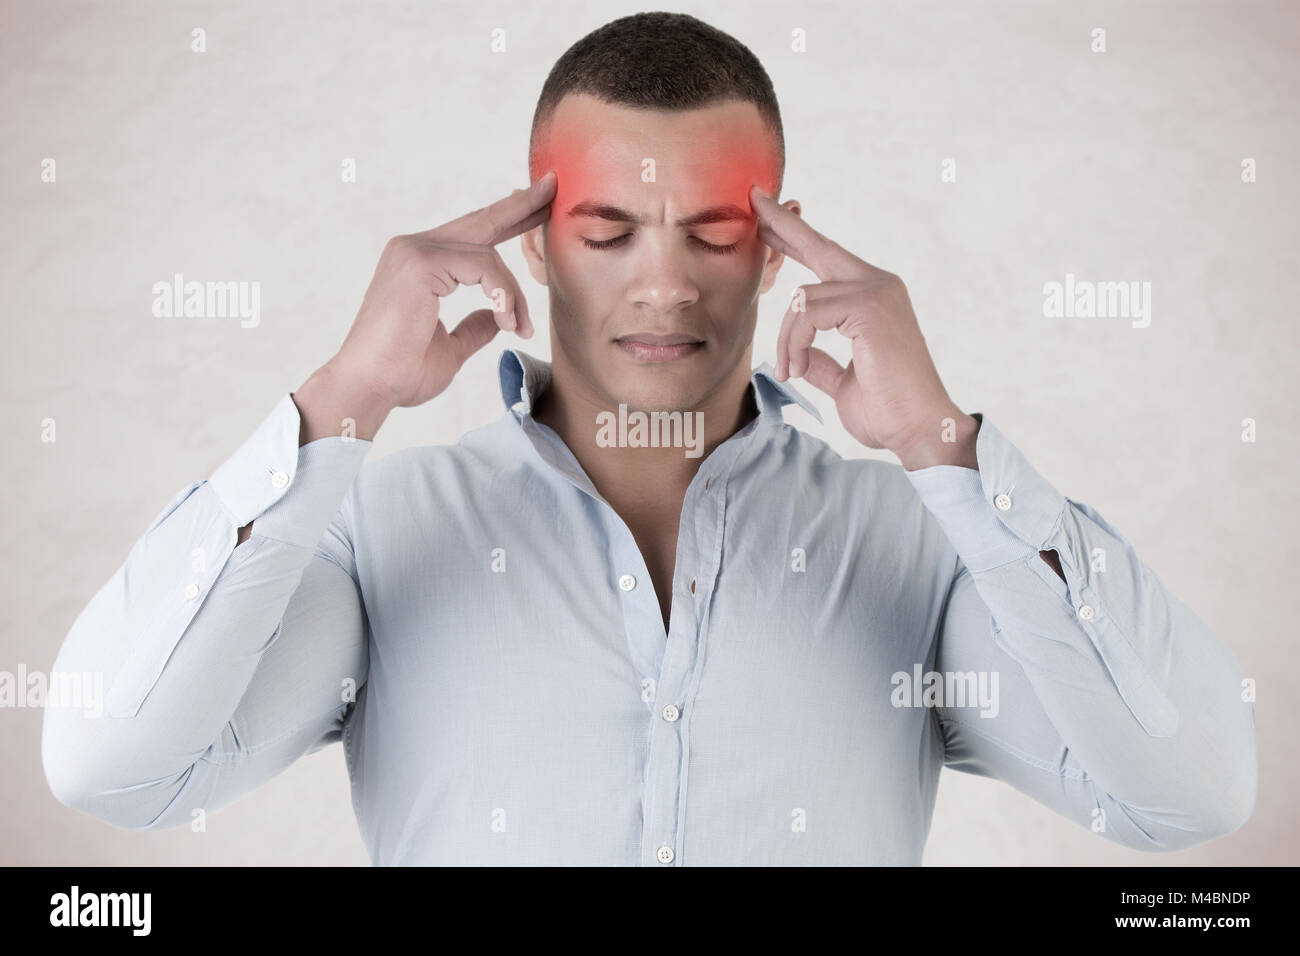 Man With An Headache - Stock Image